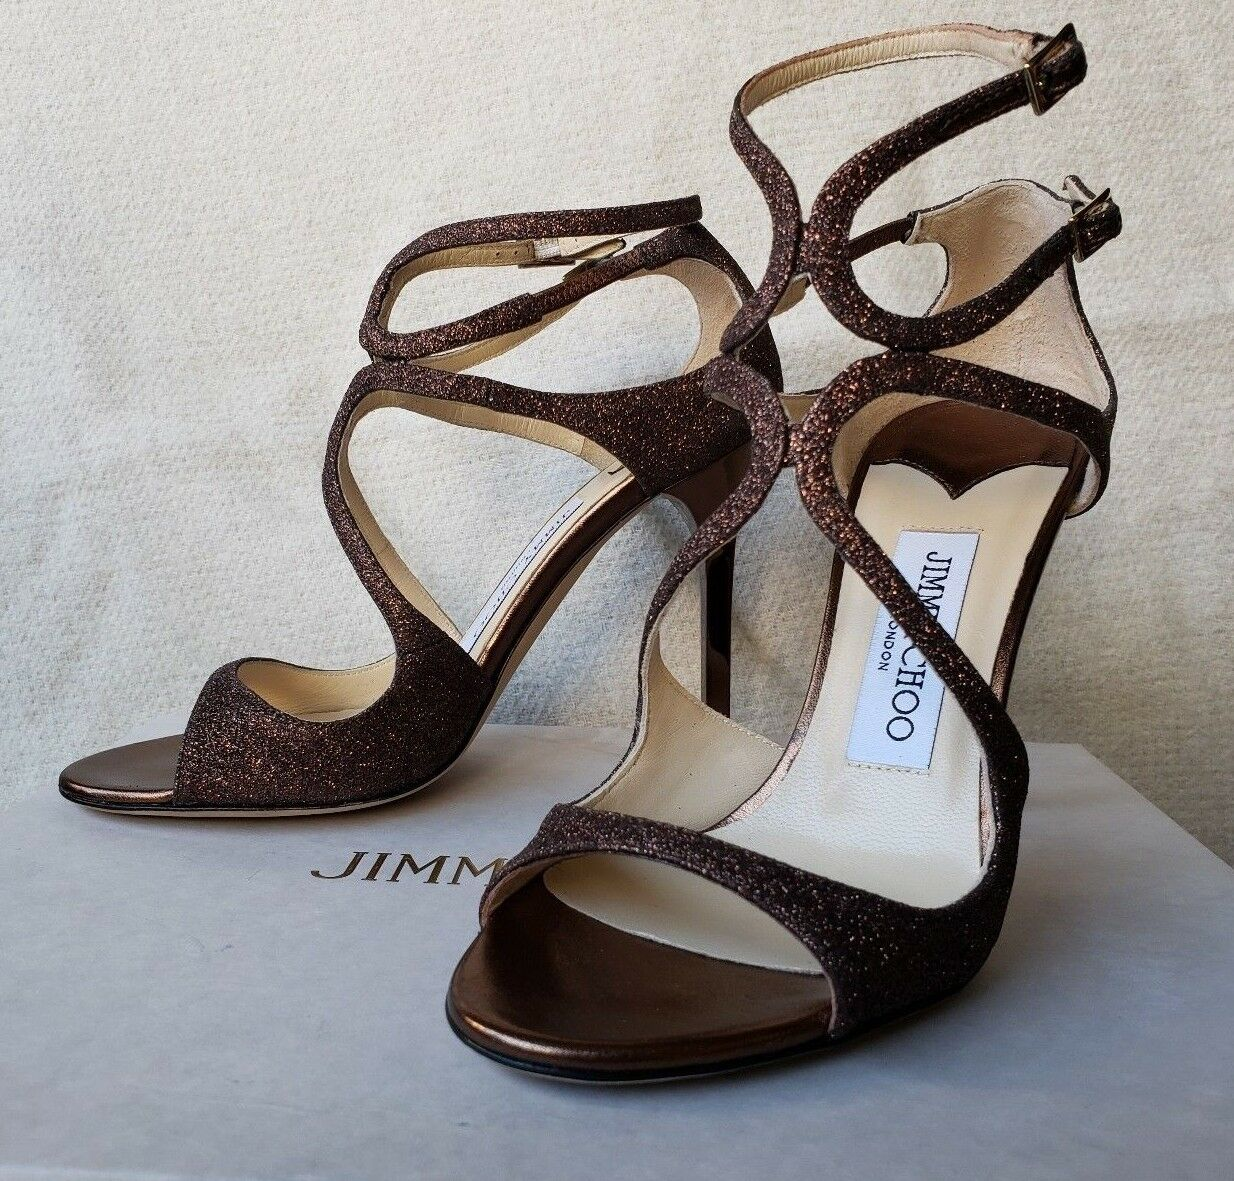 Jimmy Choo Lang 36 6 5.5 Cage Strappy Sandal Paloma Bronze Brown Glitter Copper